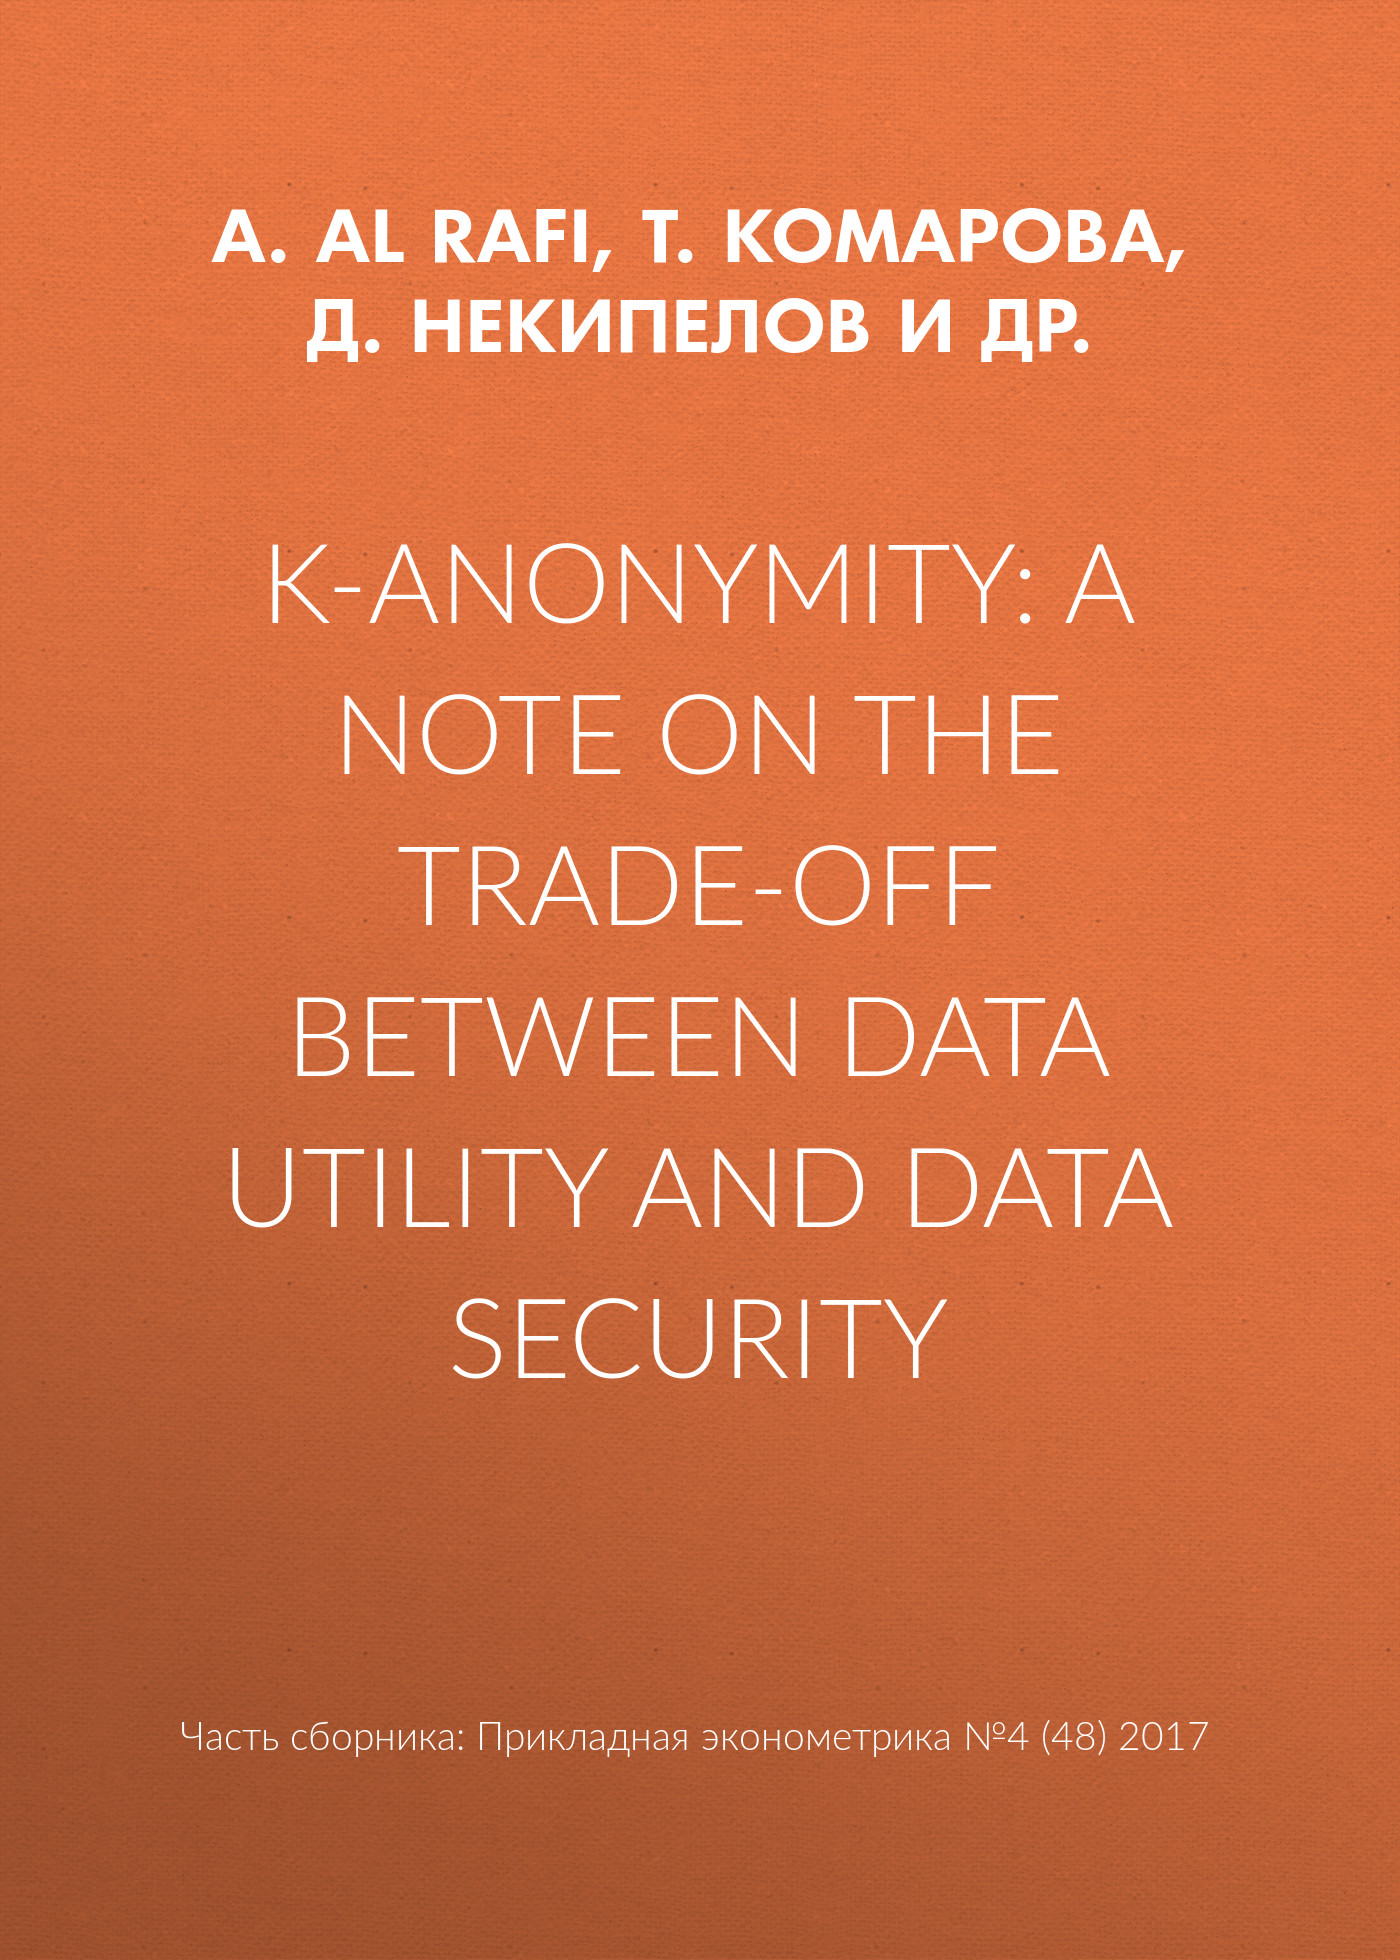 Т. Комарова K-anonymity: A note on the trade-off between data utility and data security l k neff the sea bell